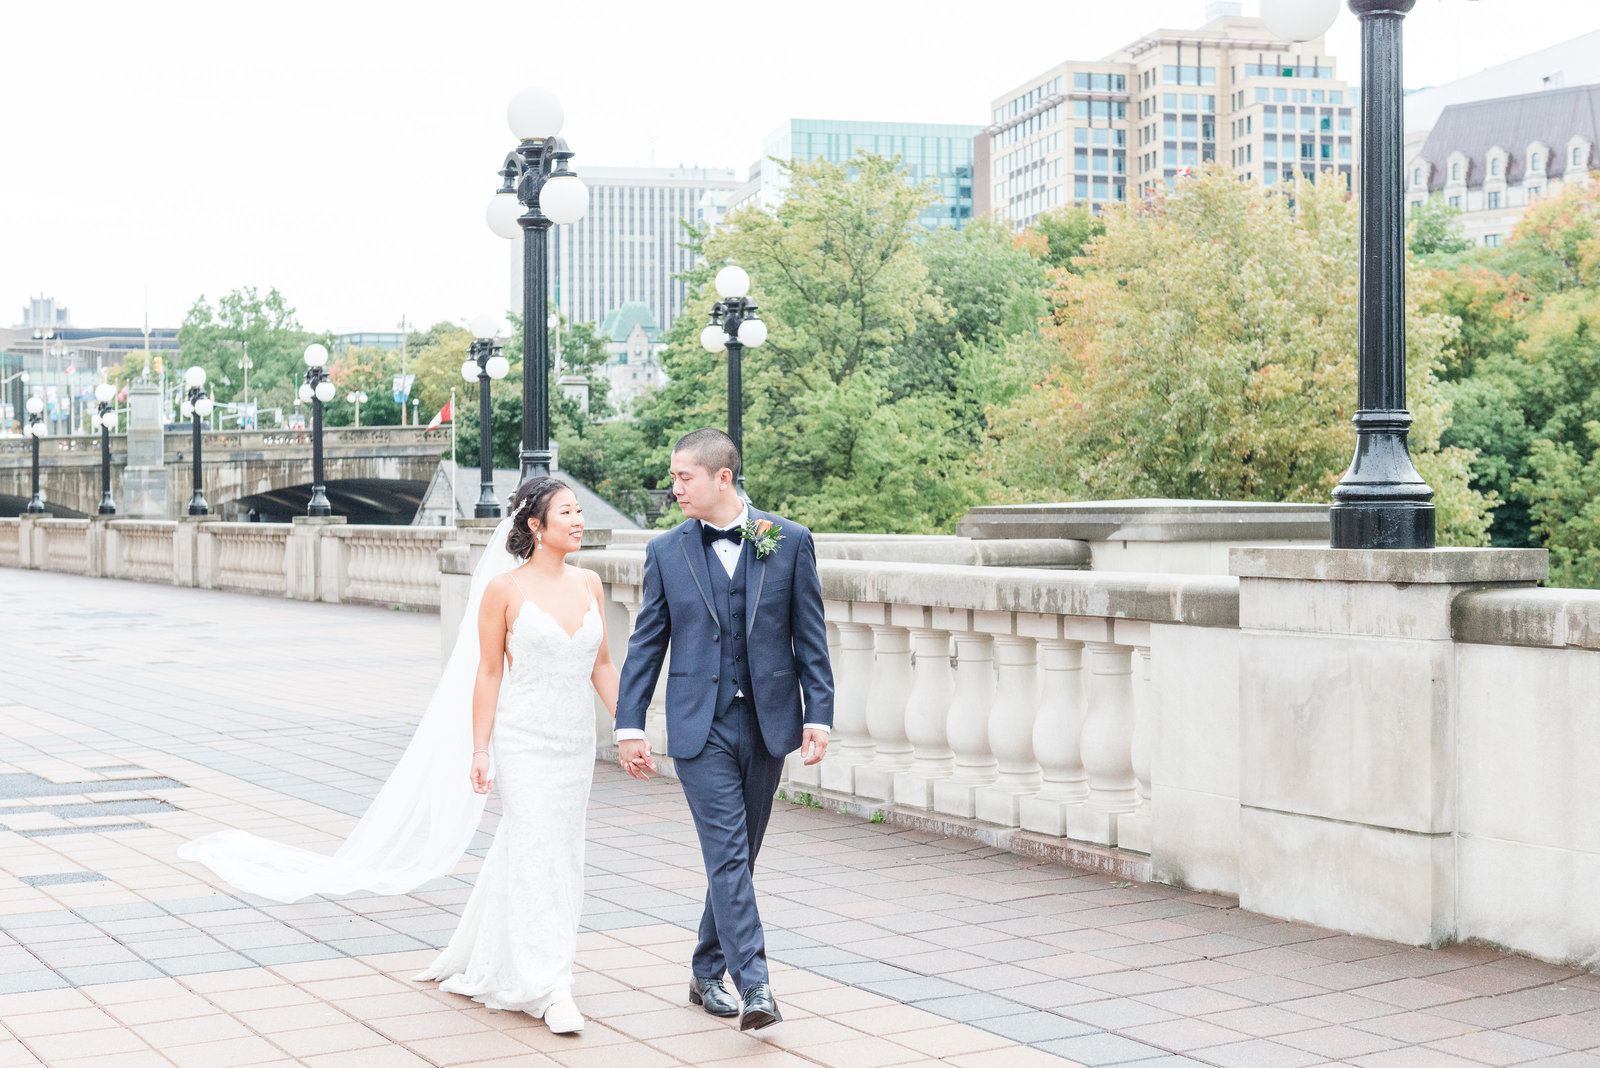 Tracy-Minh-Wedding-161726